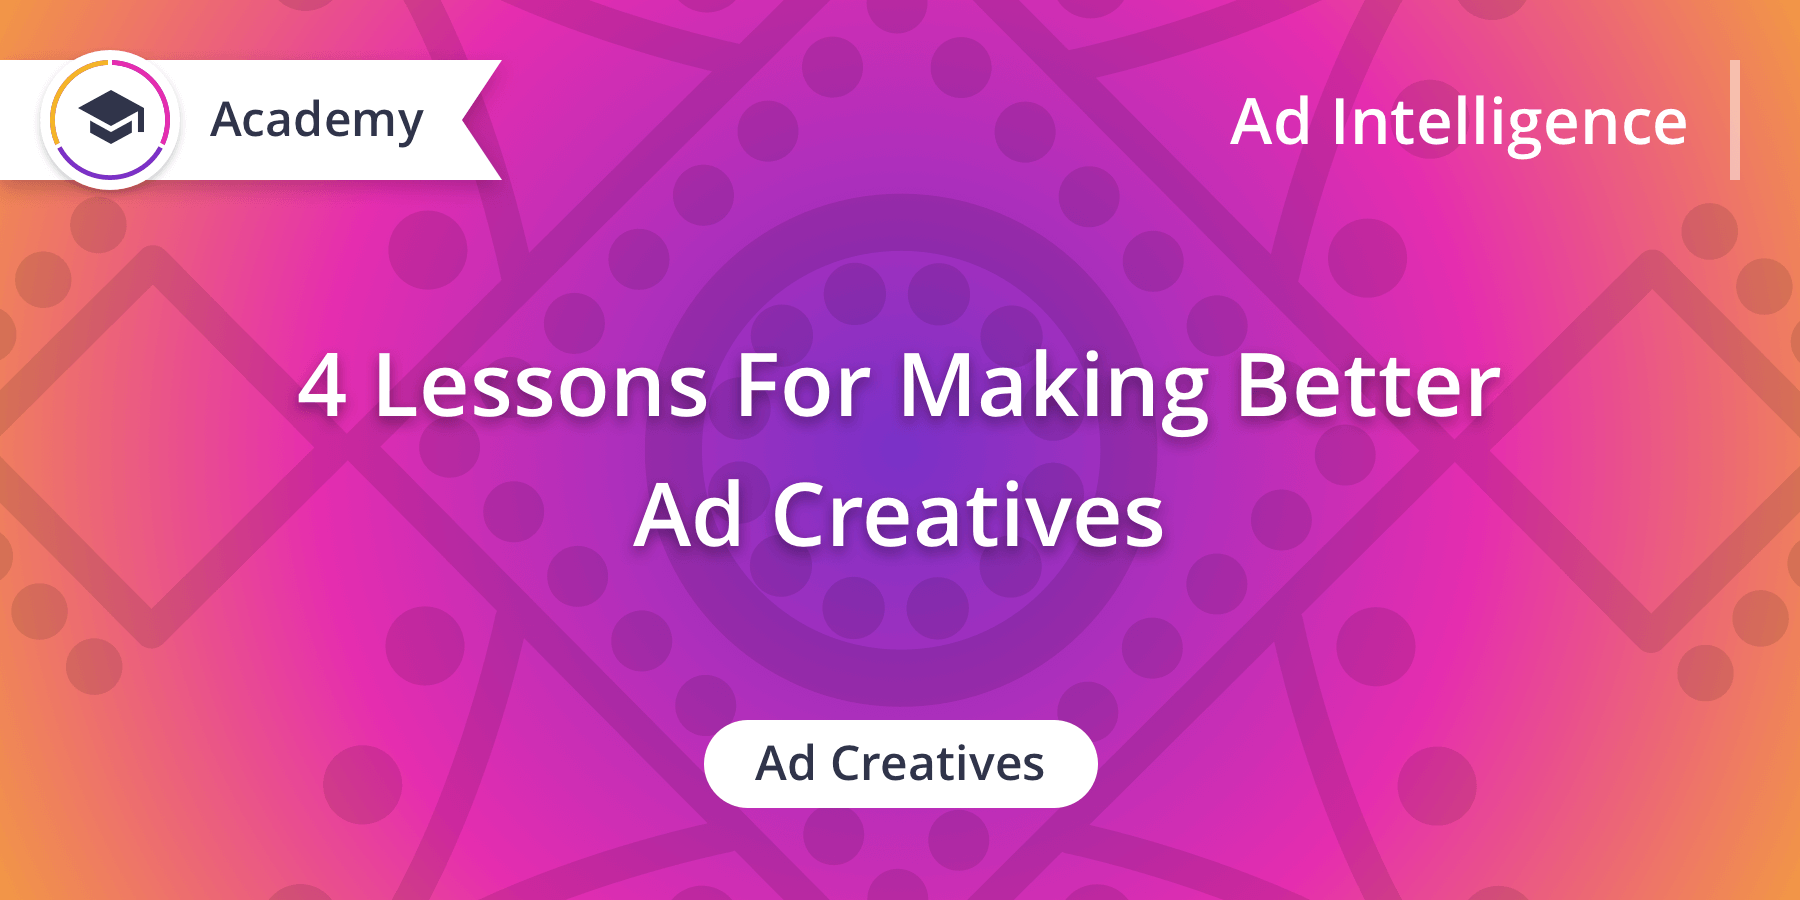 4 Lessons for Making Better Ad Creatives